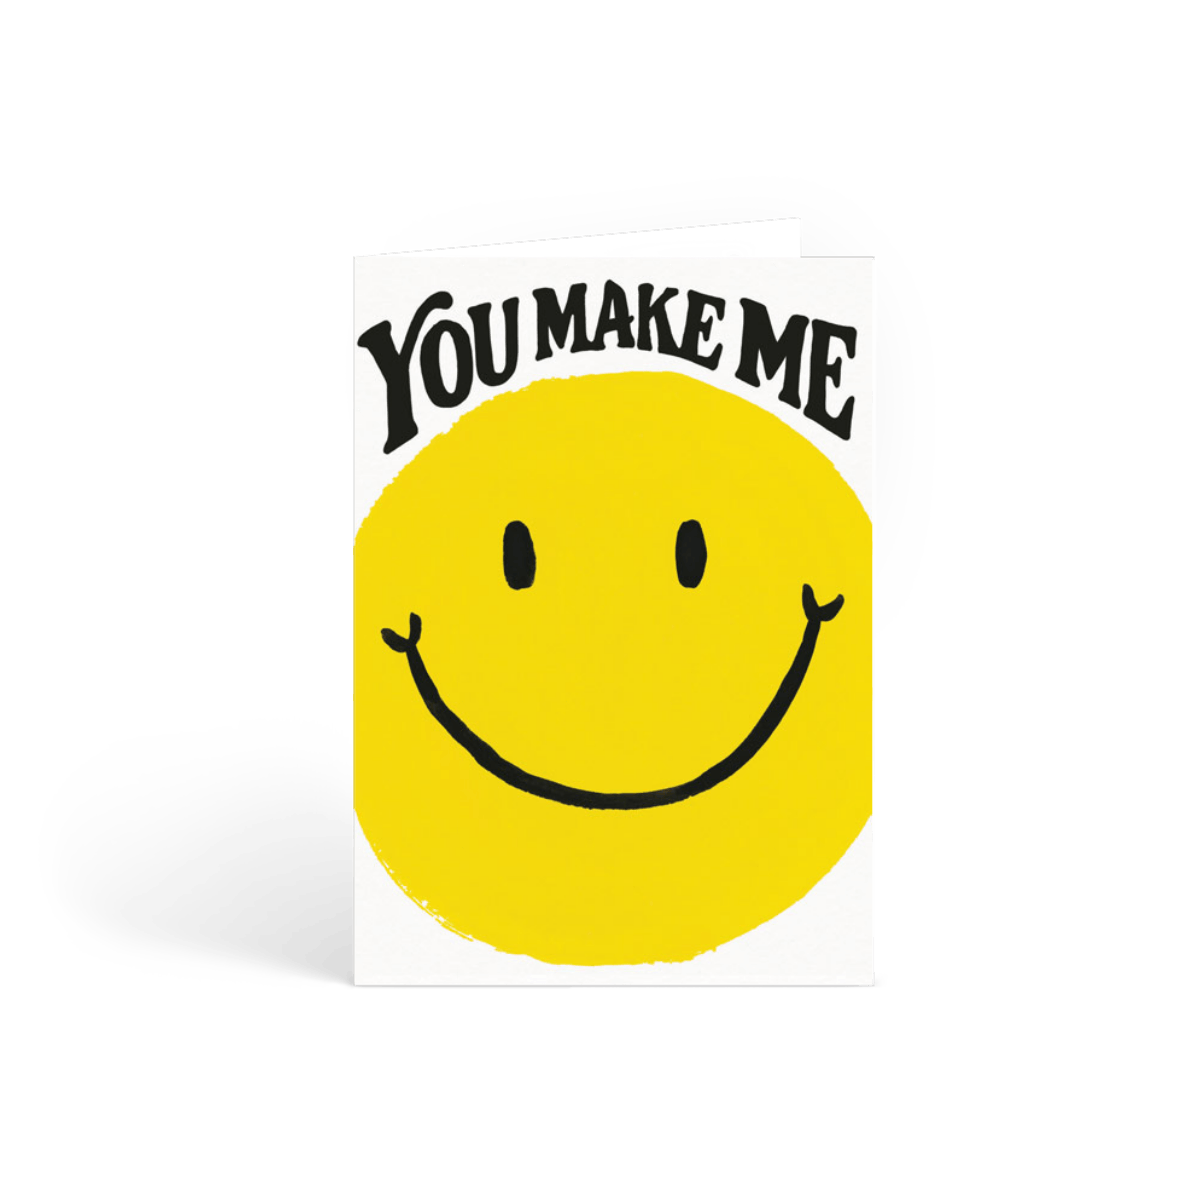 Https%3a%2f%2fwww.papier.com%2fproduct image%2f62451%2f2%2fyou make me smile 14779 front 1548094433.png?ixlib=rb 1.1